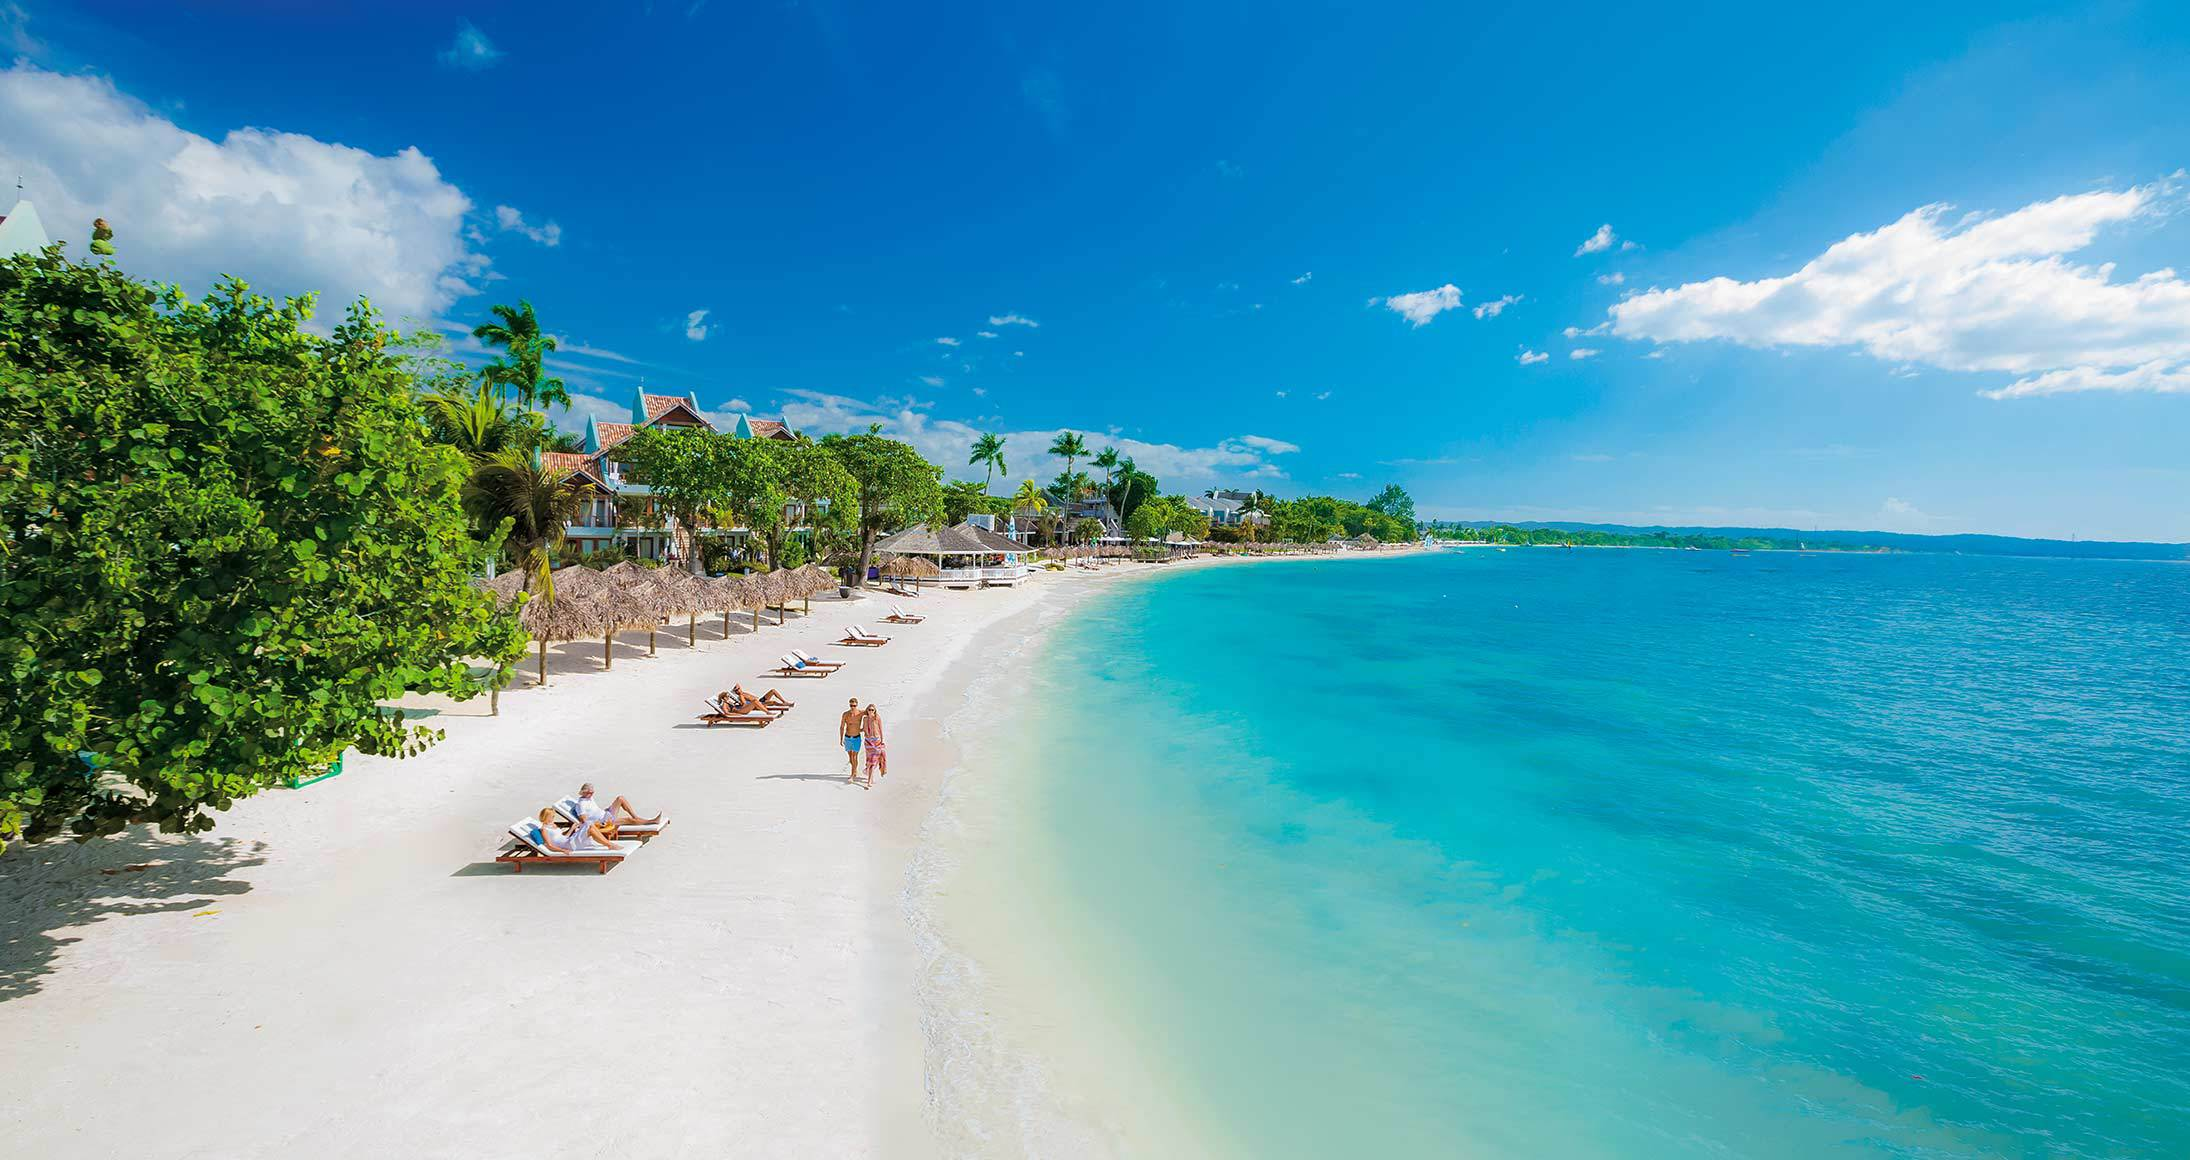 e1a853713 Sandals Negril - All-Inclusive Resort on Seven-Mile Beach